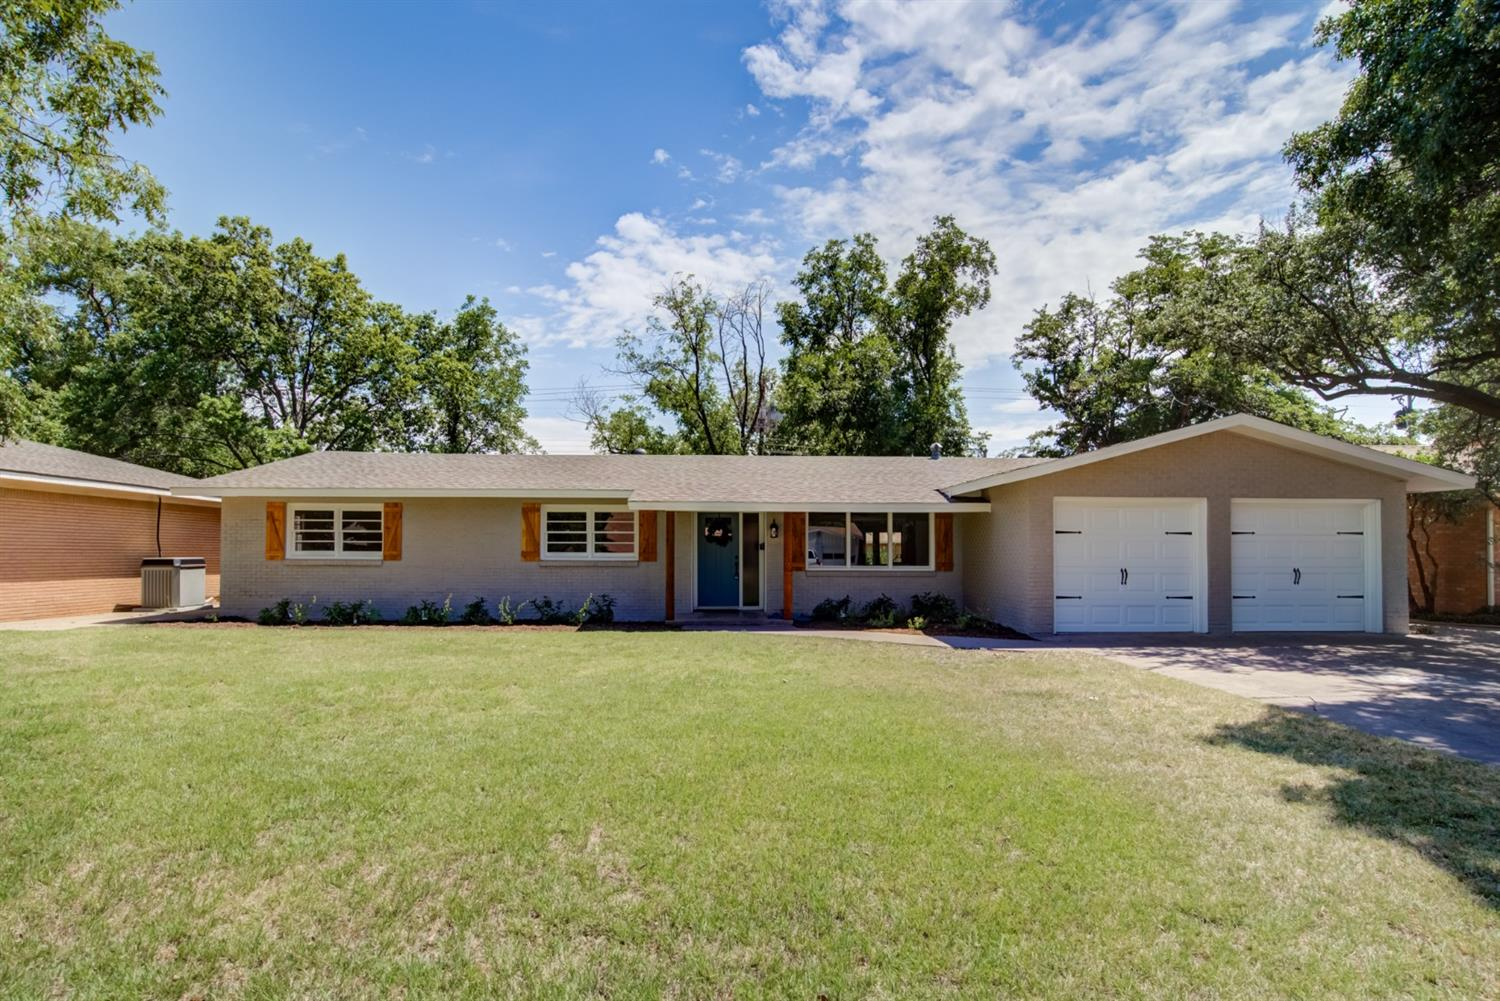 2105 56th Street, Lubbock in Lubbock County, TX 79412 Home for Sale